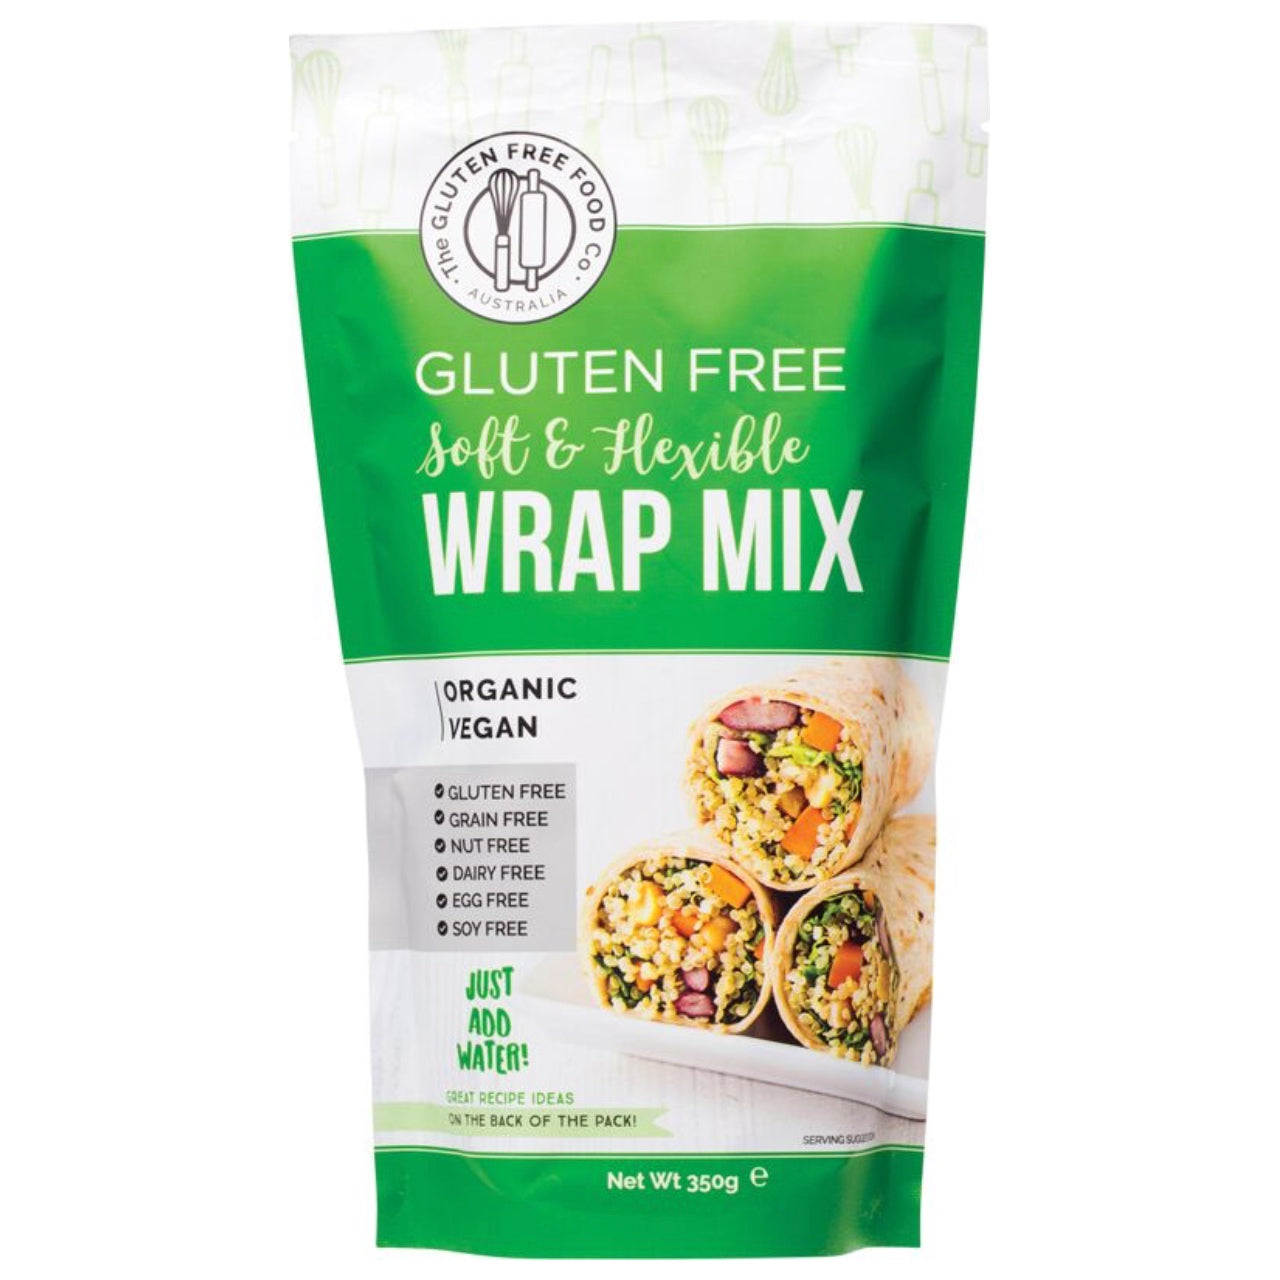 The Gluten Free Food Co Soft & Flexible Wrap Mix